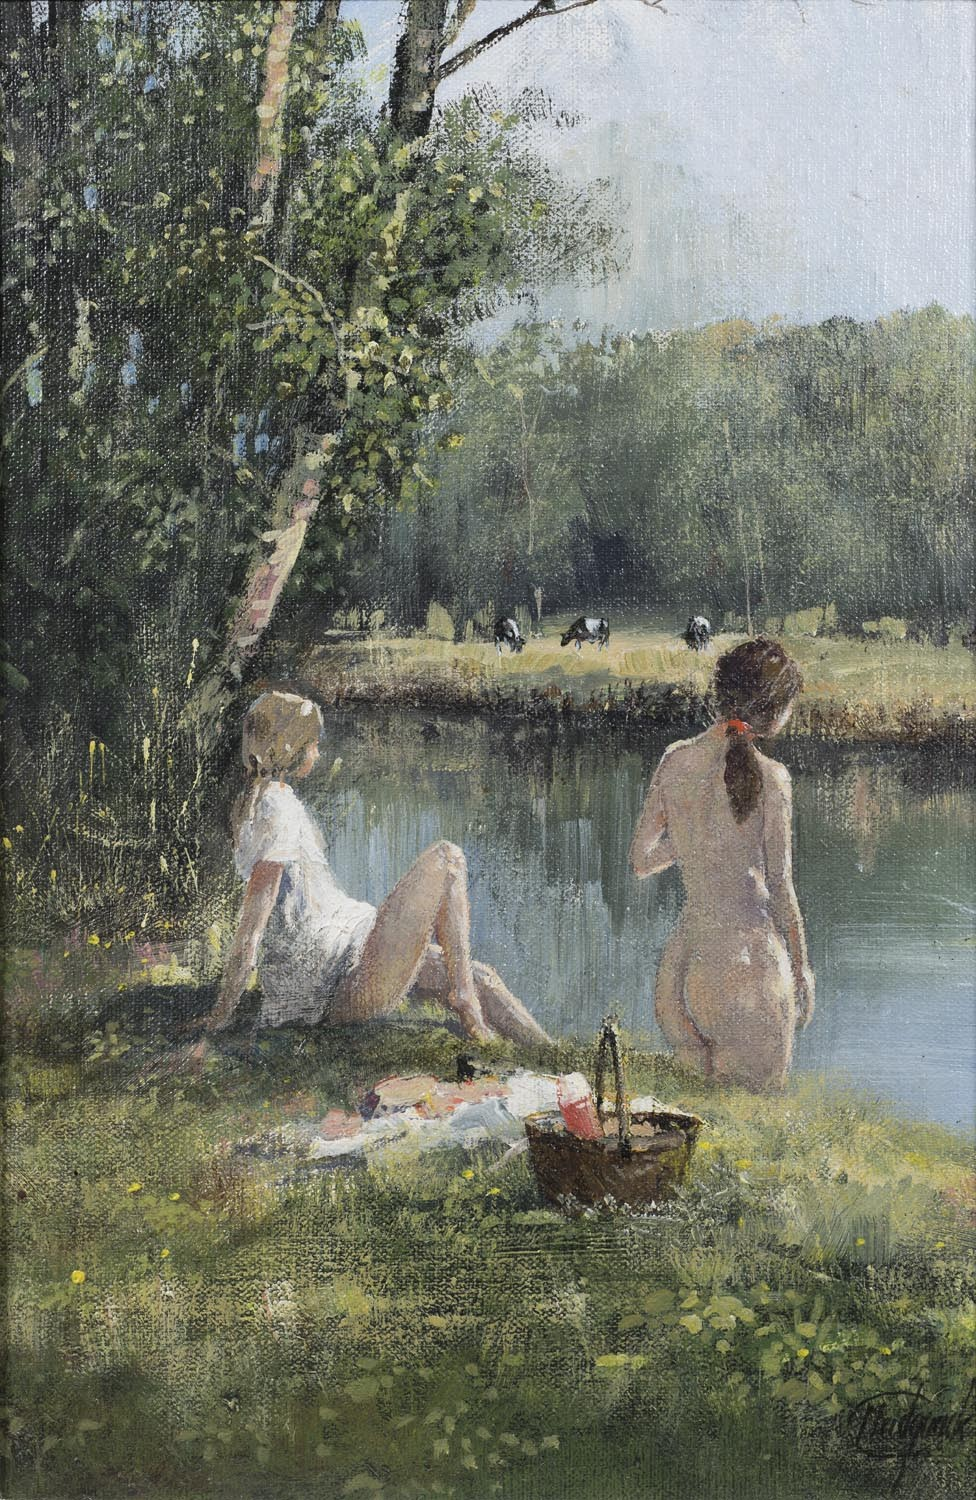 The Summer Swim & Picnic - SOLD